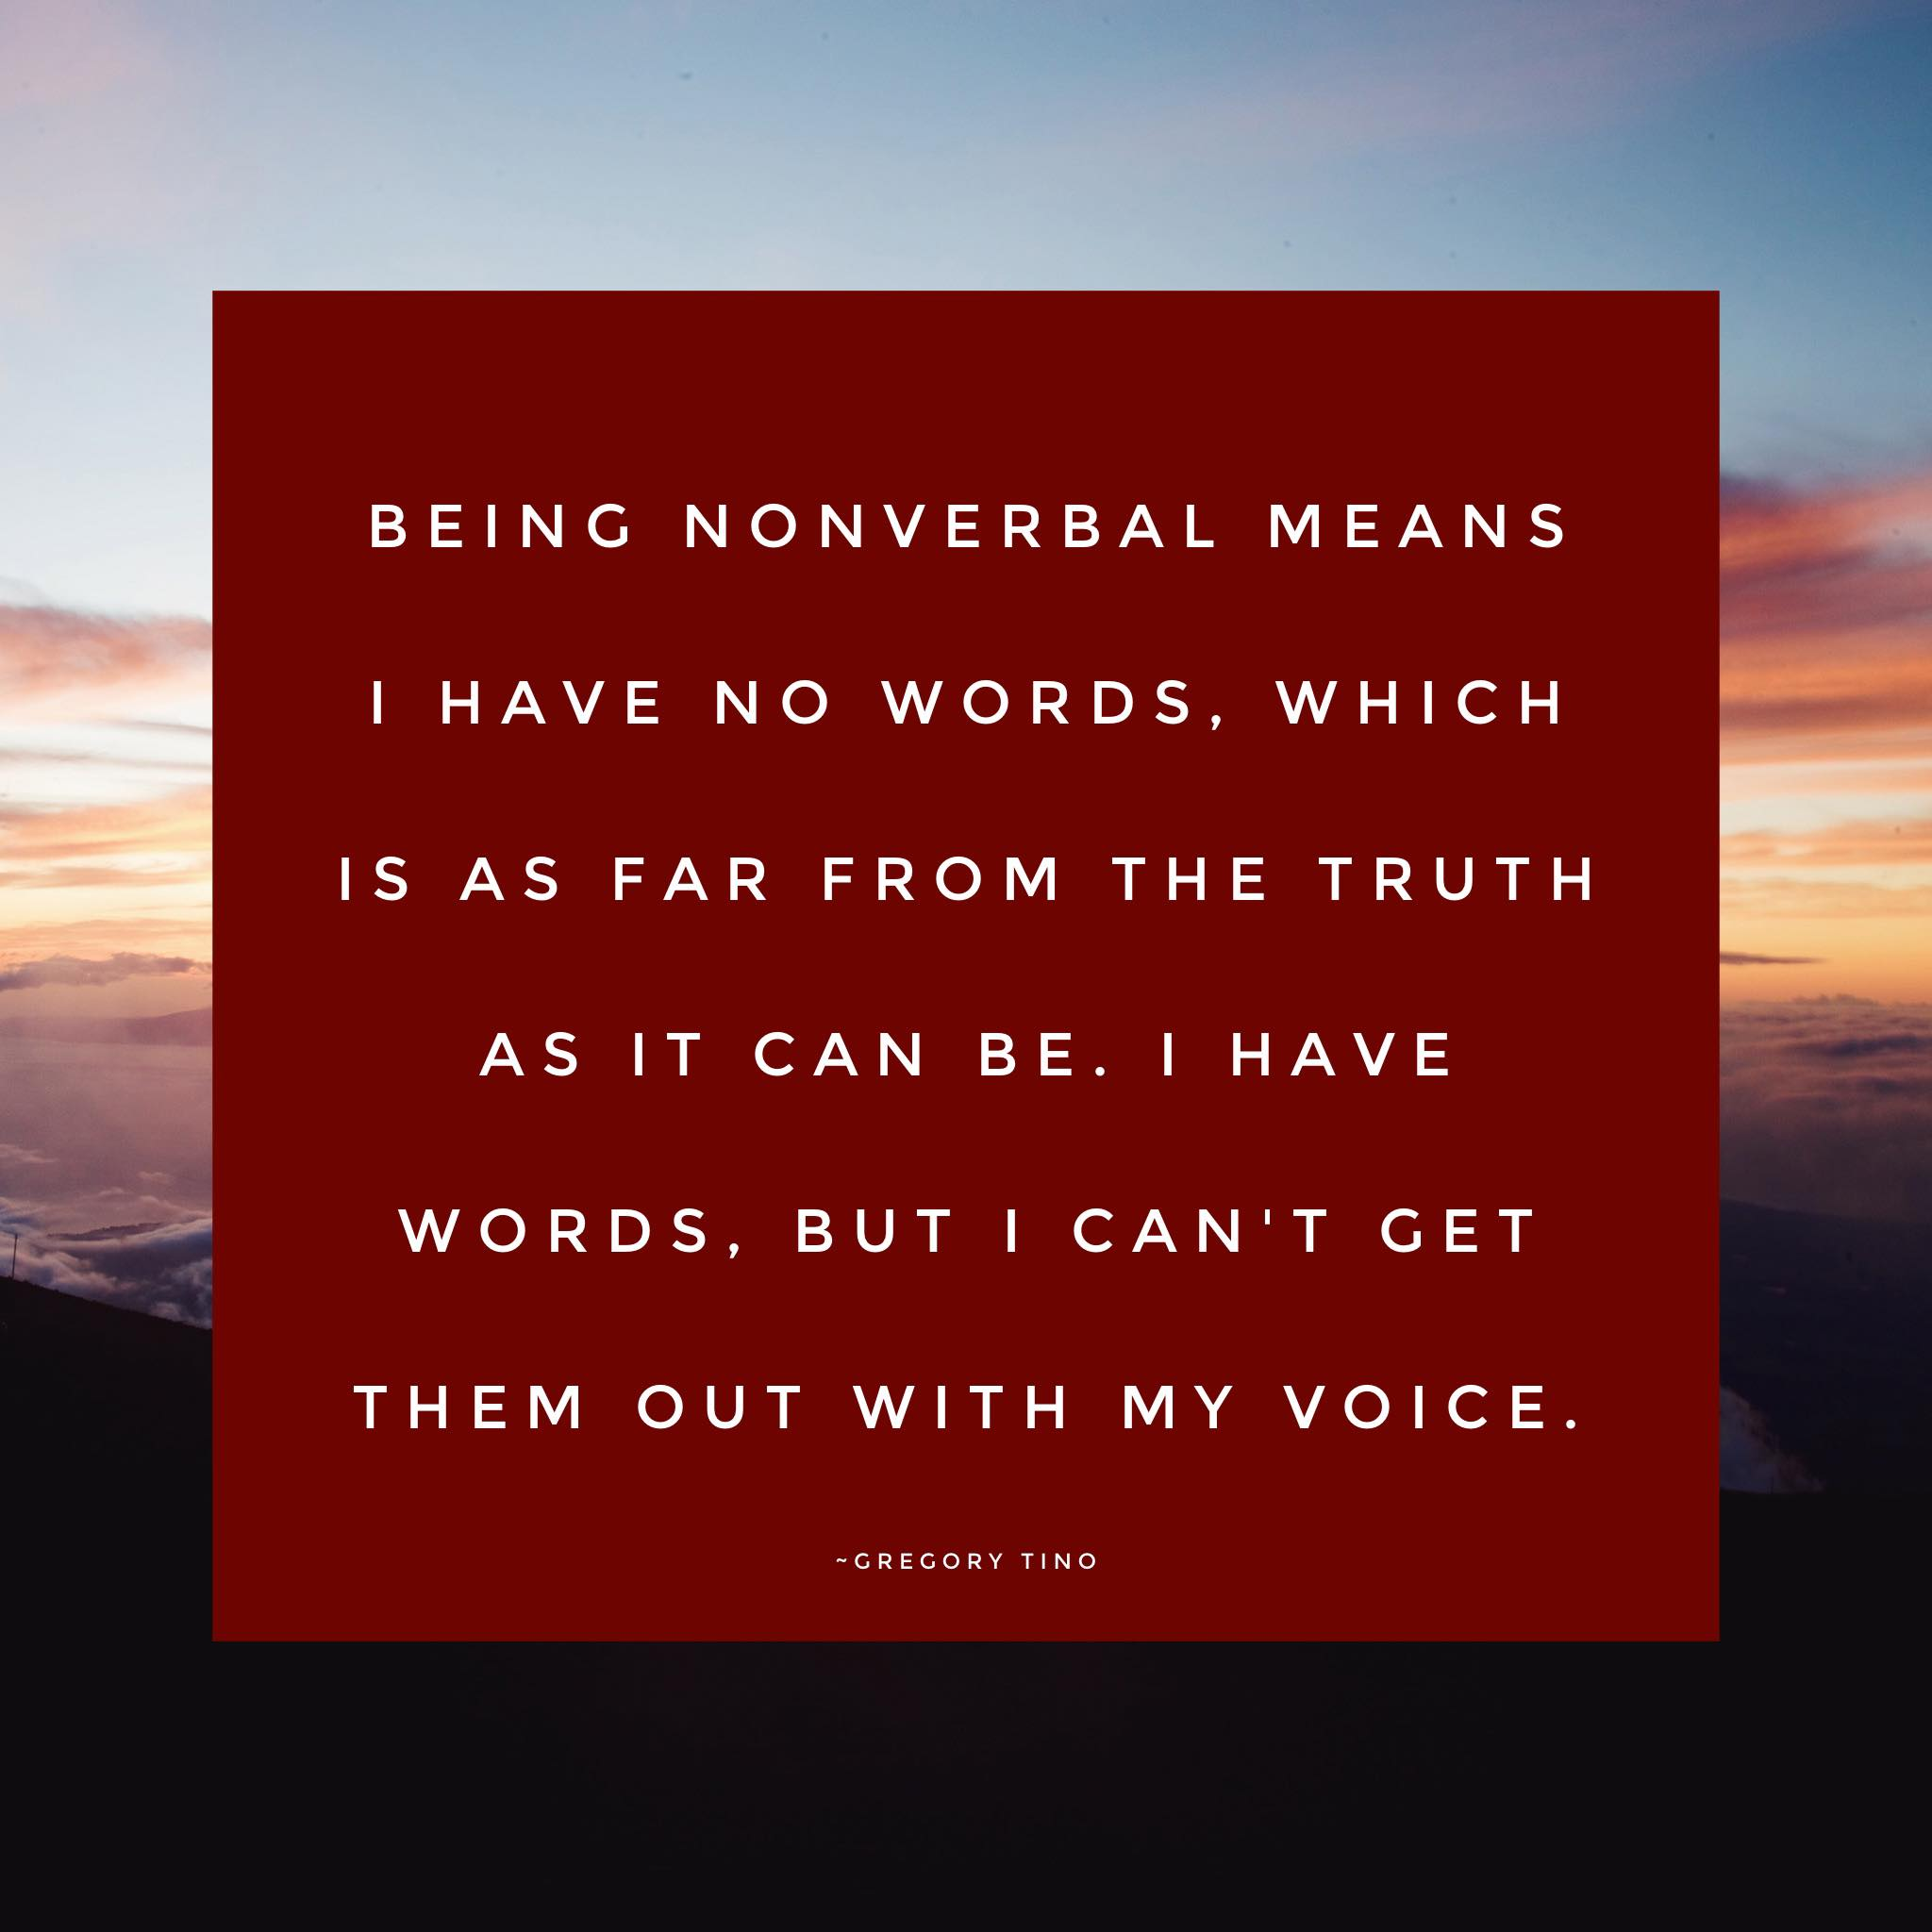 Being nonverbal means I have no words, which is as far from the truth as it can be. I have words, but I can't get them out with my voice. -Gregory Tino. Image has a colorful sky as the background with the quote above in a box.